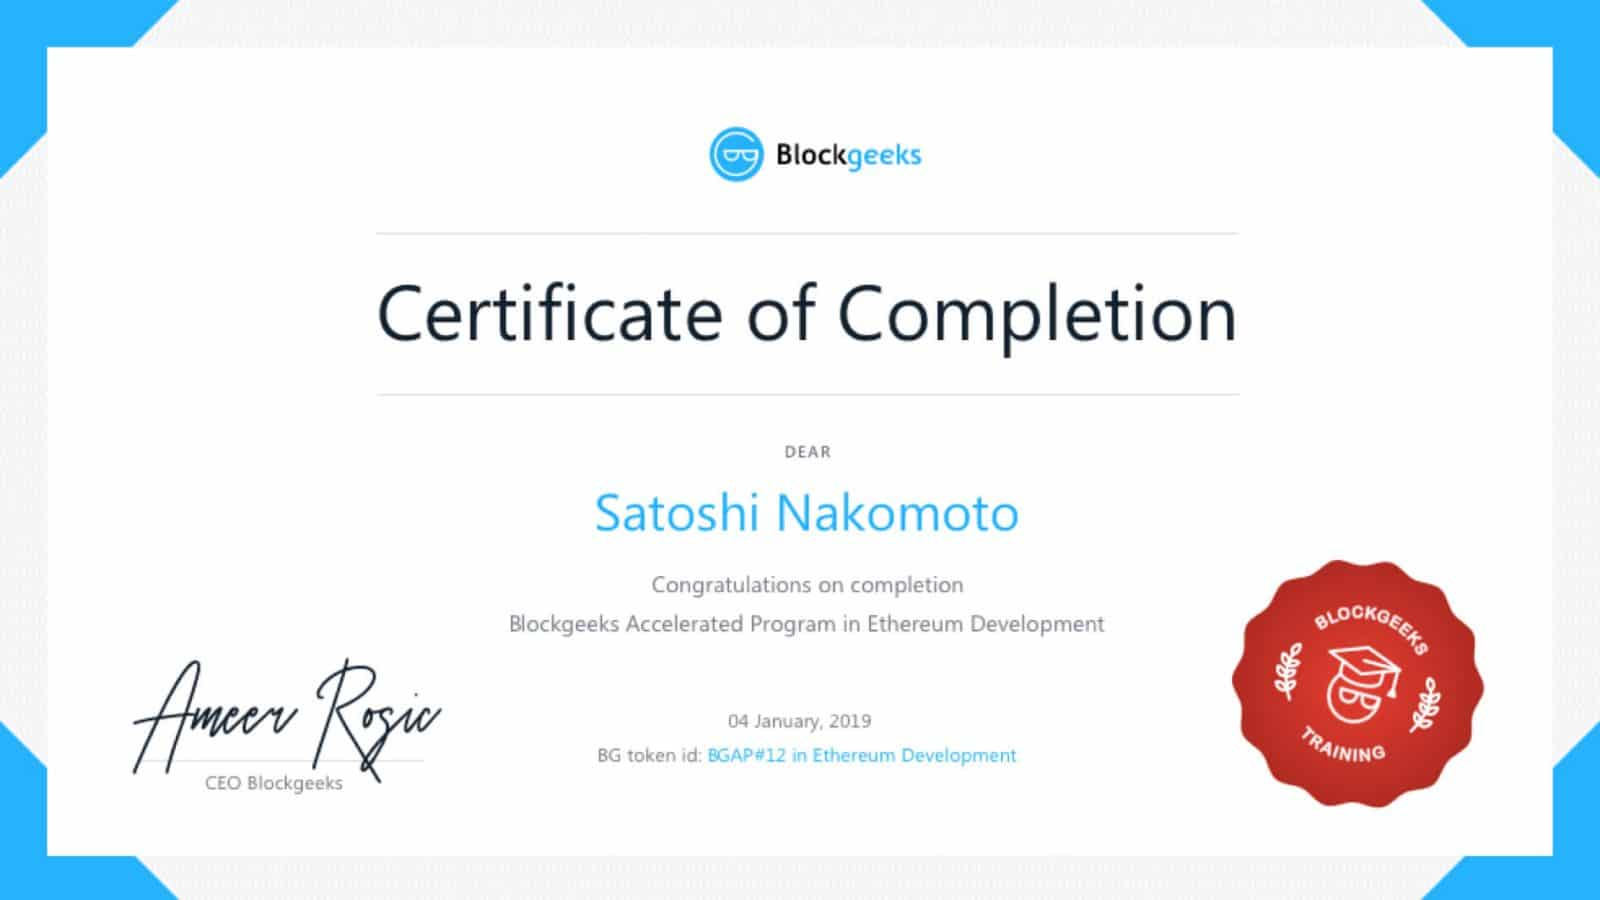 Certificate of Completion verified on Ethereum blockchain